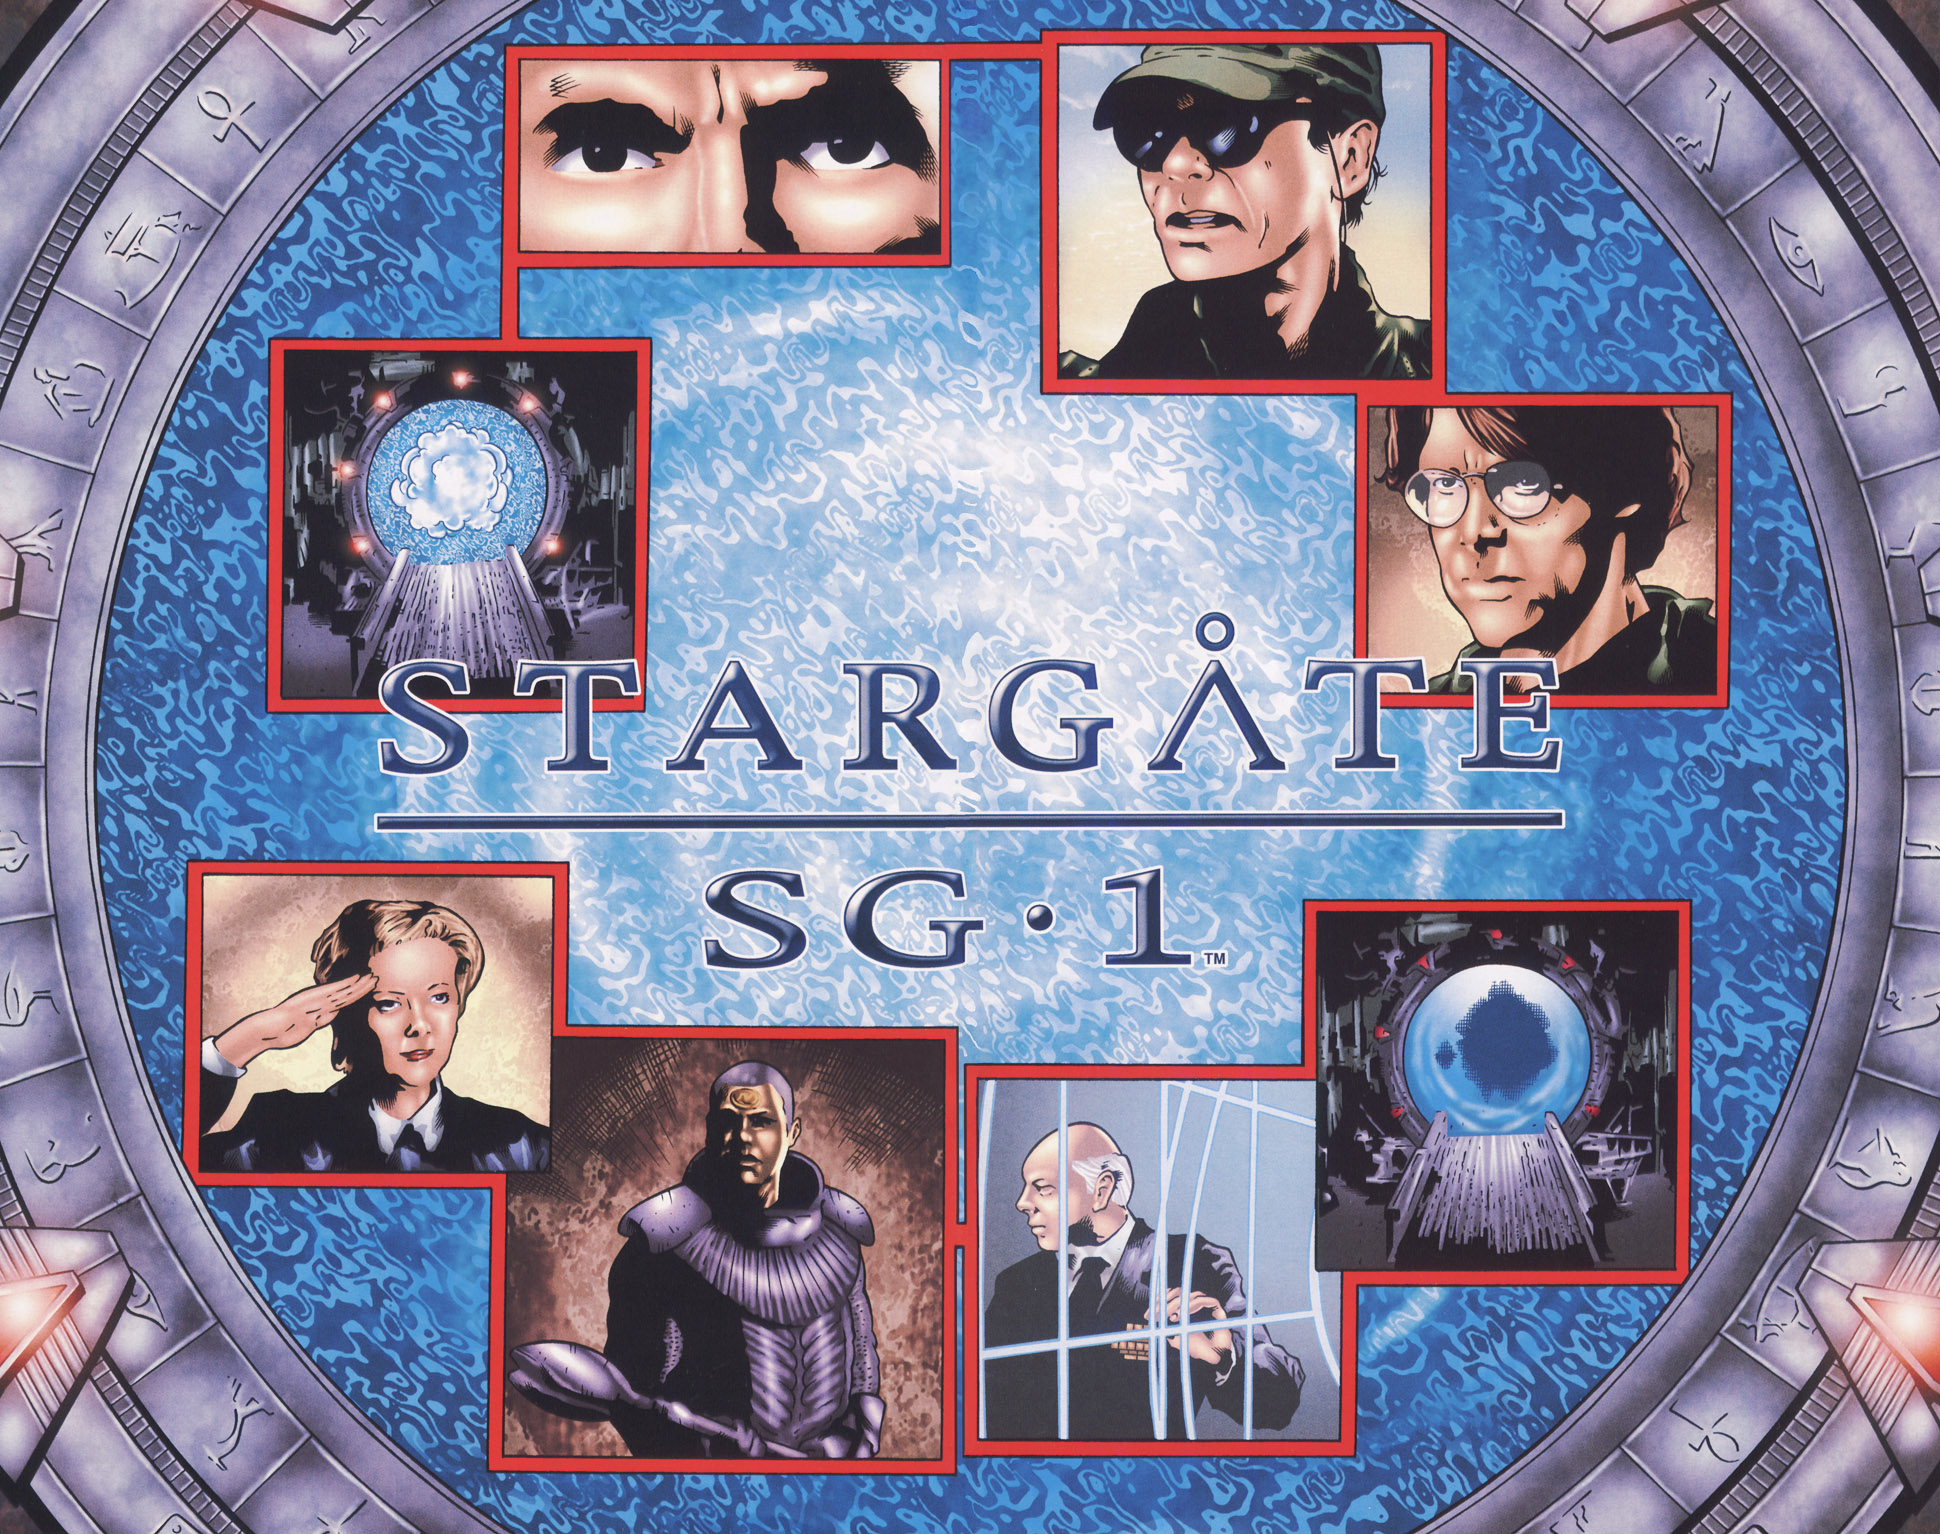 Read online Stargate SG-1: Fall of Rome comic -  Issue #1 - 10